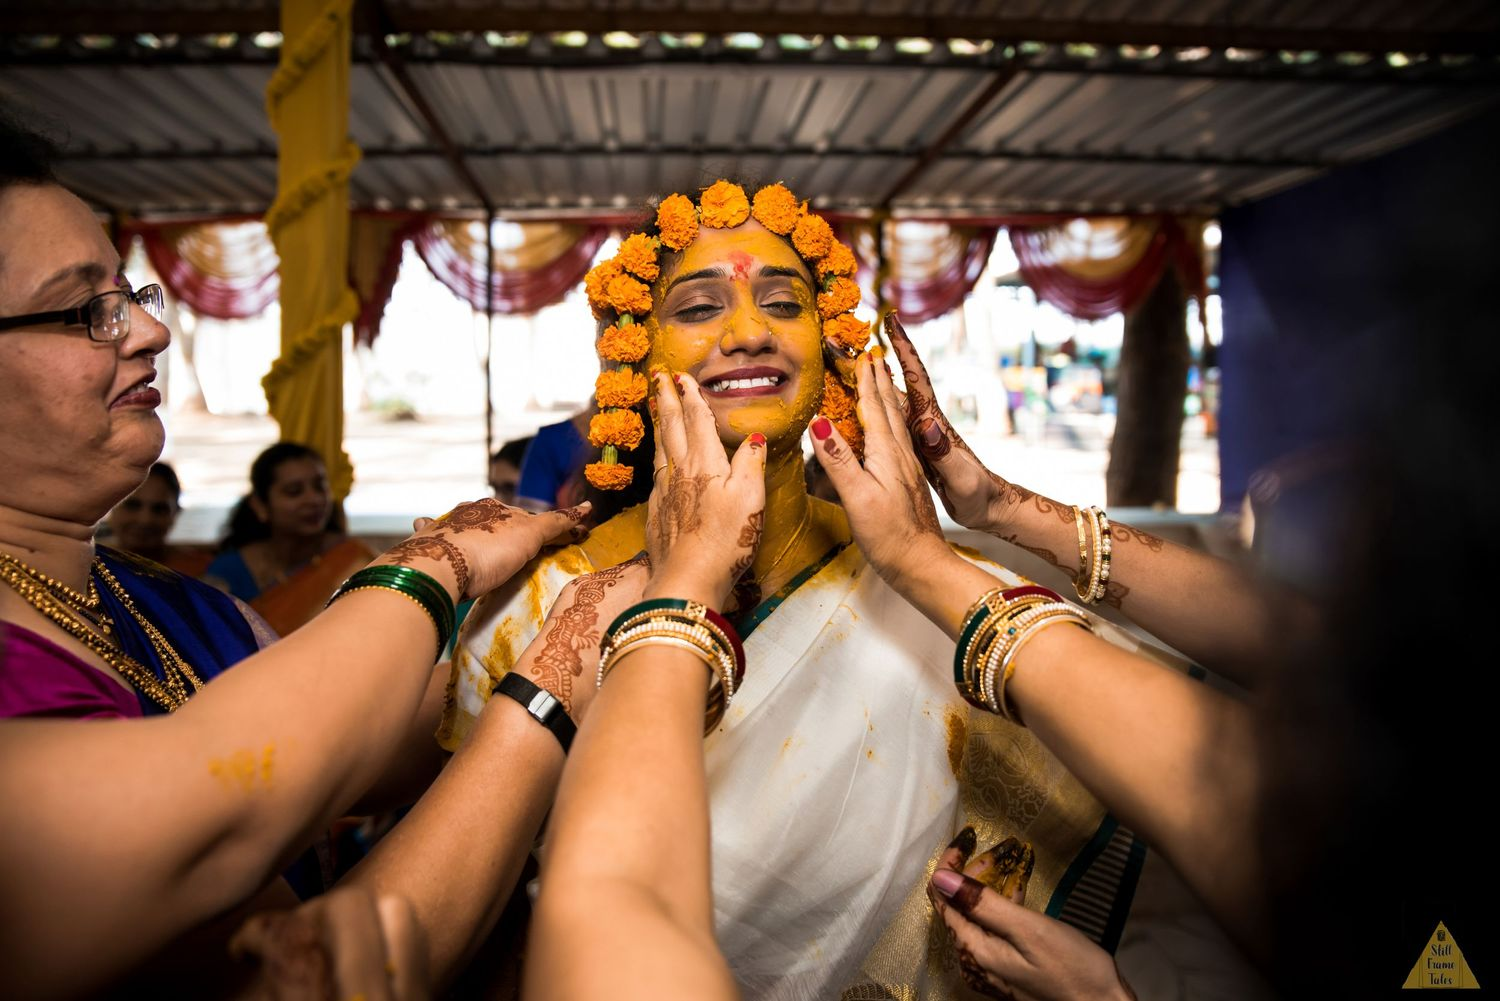 Relatives putting haldi on bride's face at a destination wedding